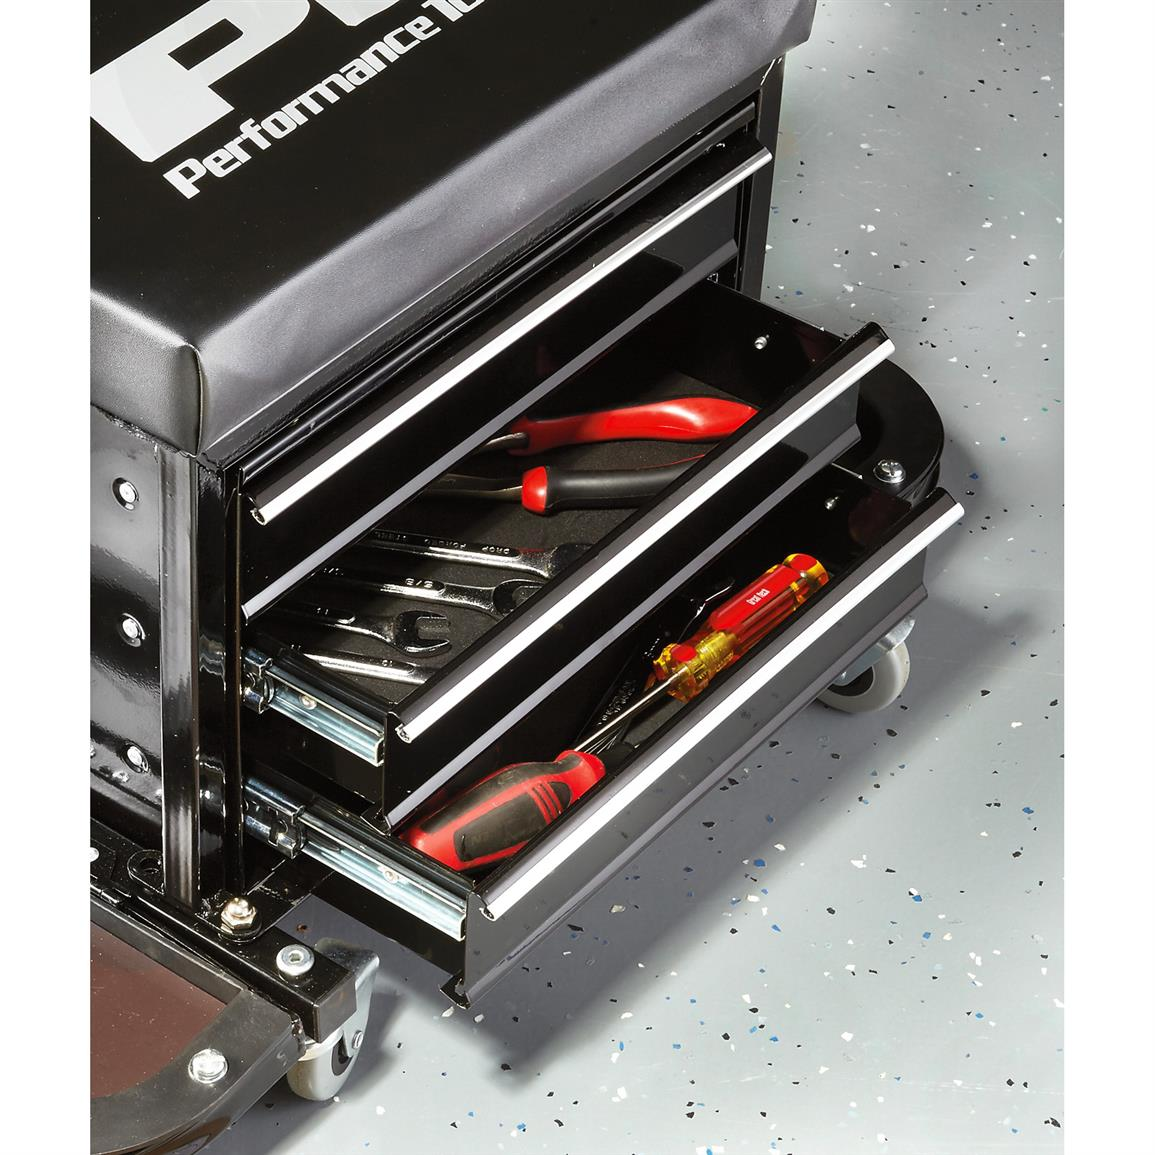 3 drawers store your tools